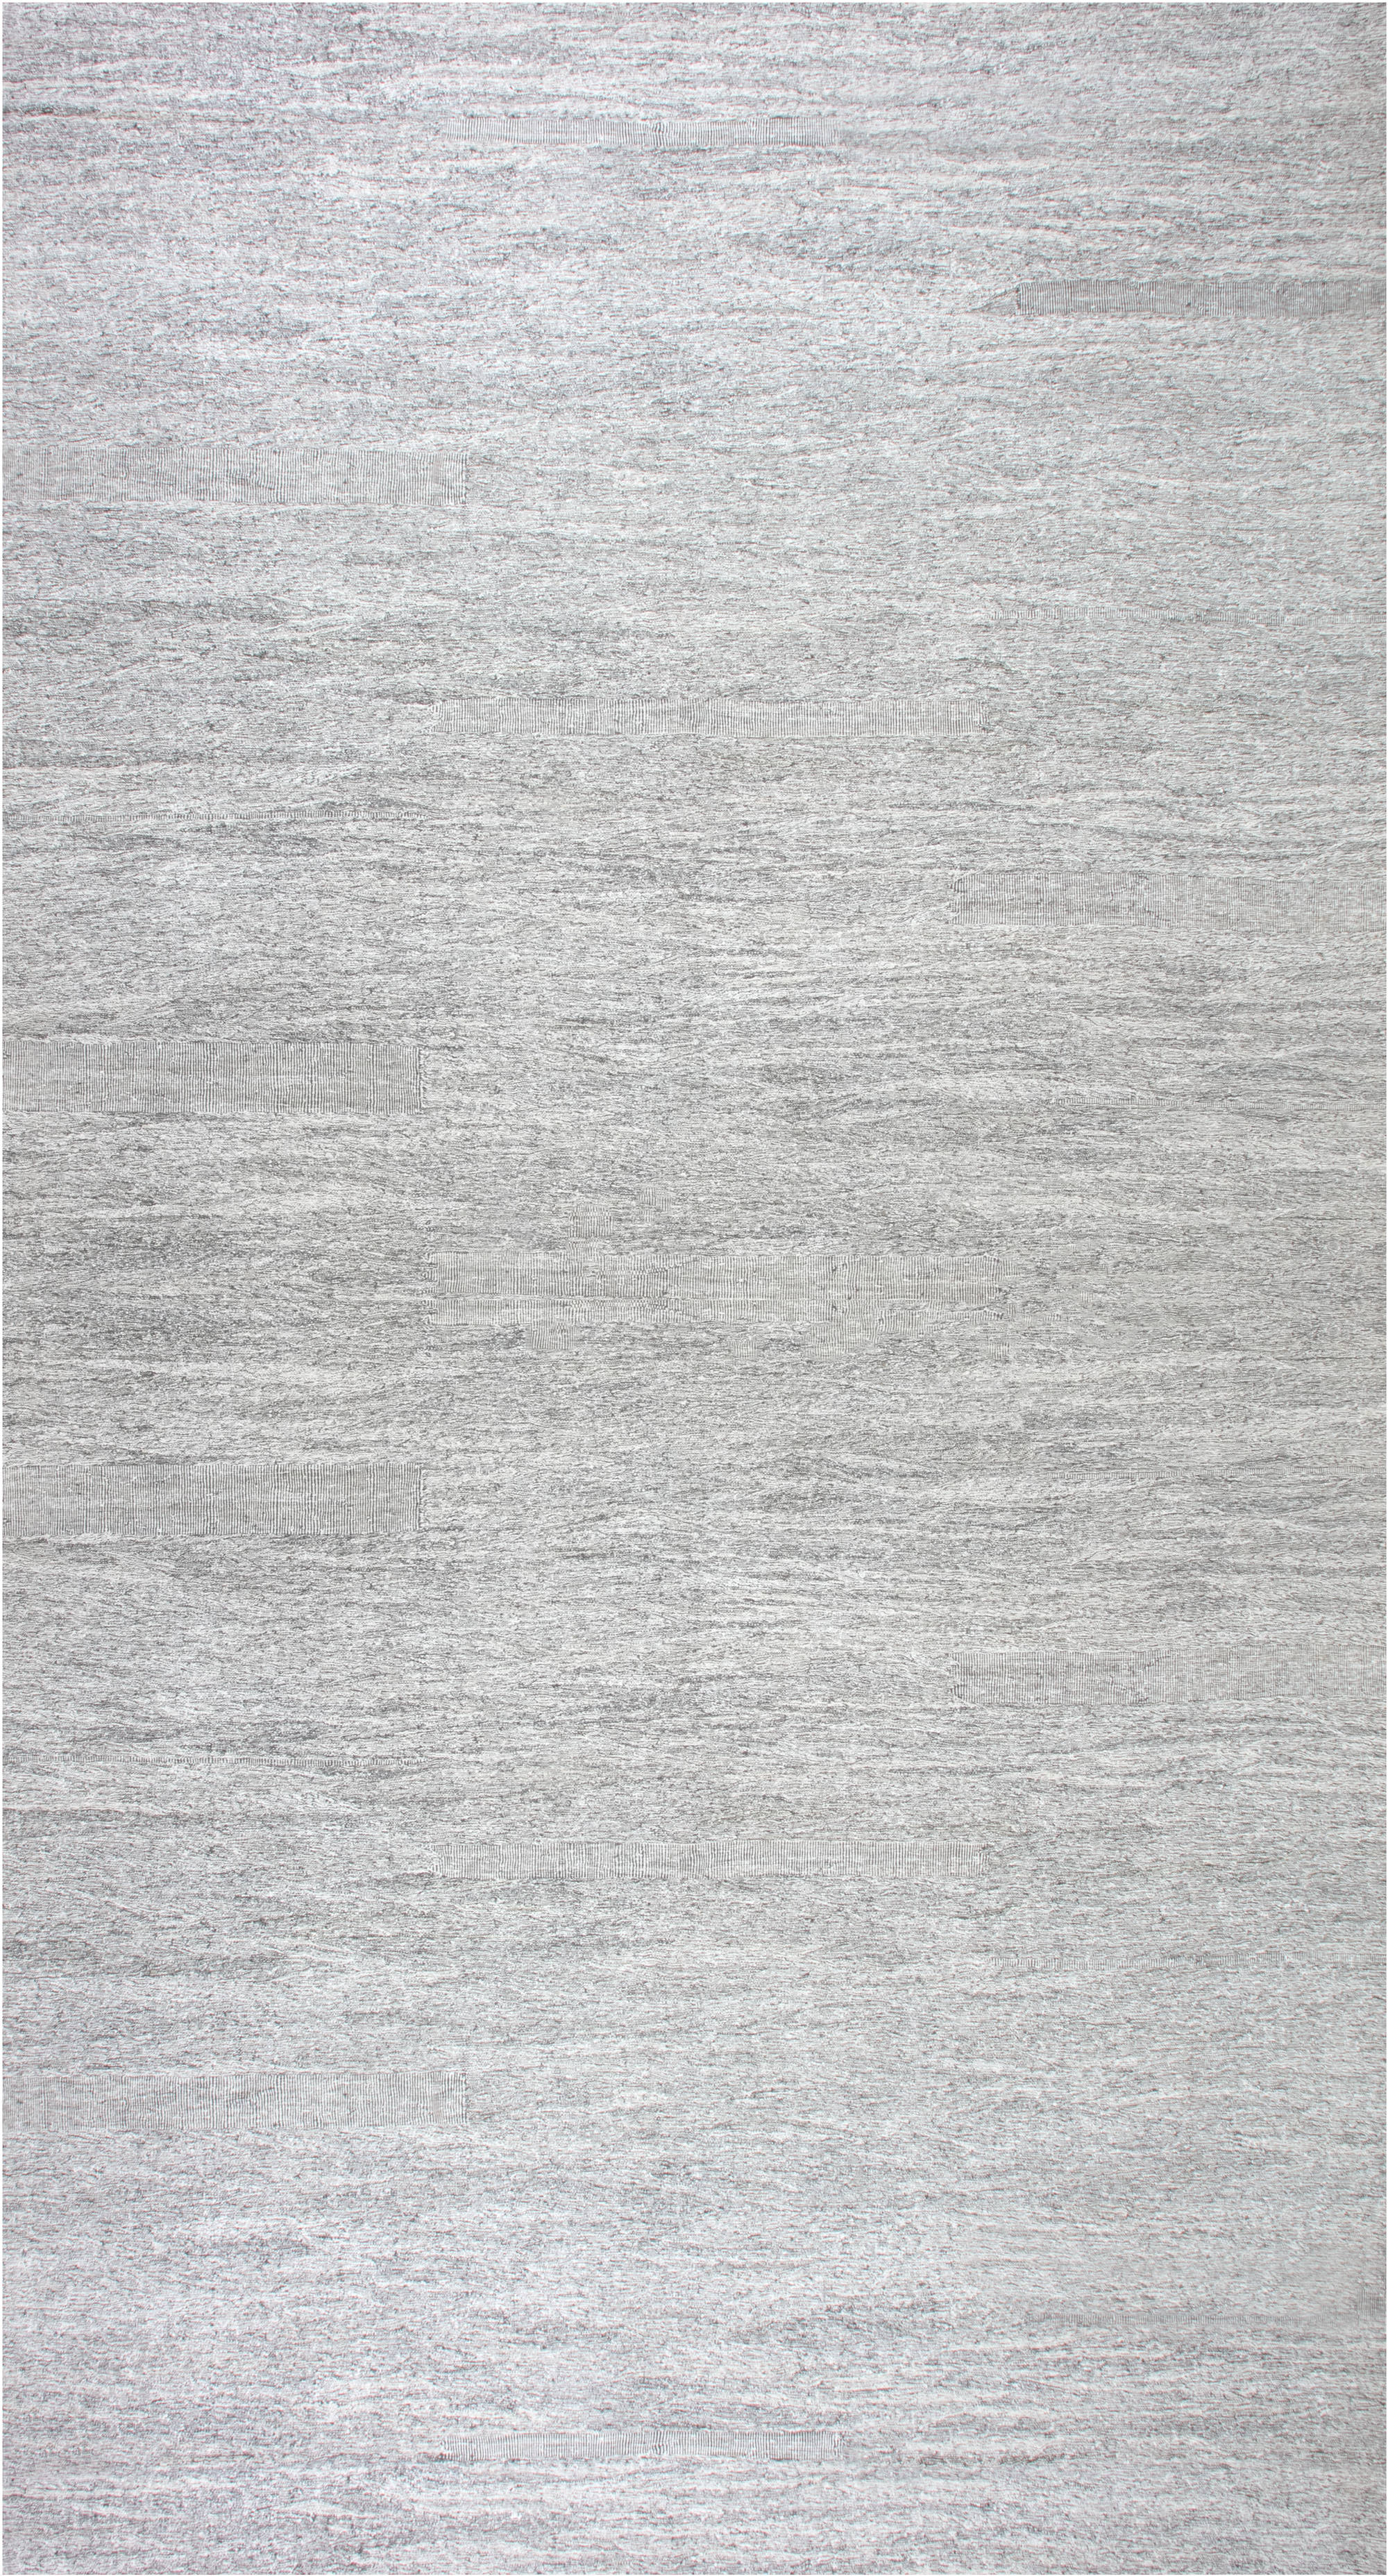 Contemporary Flat Weave Rug N11990